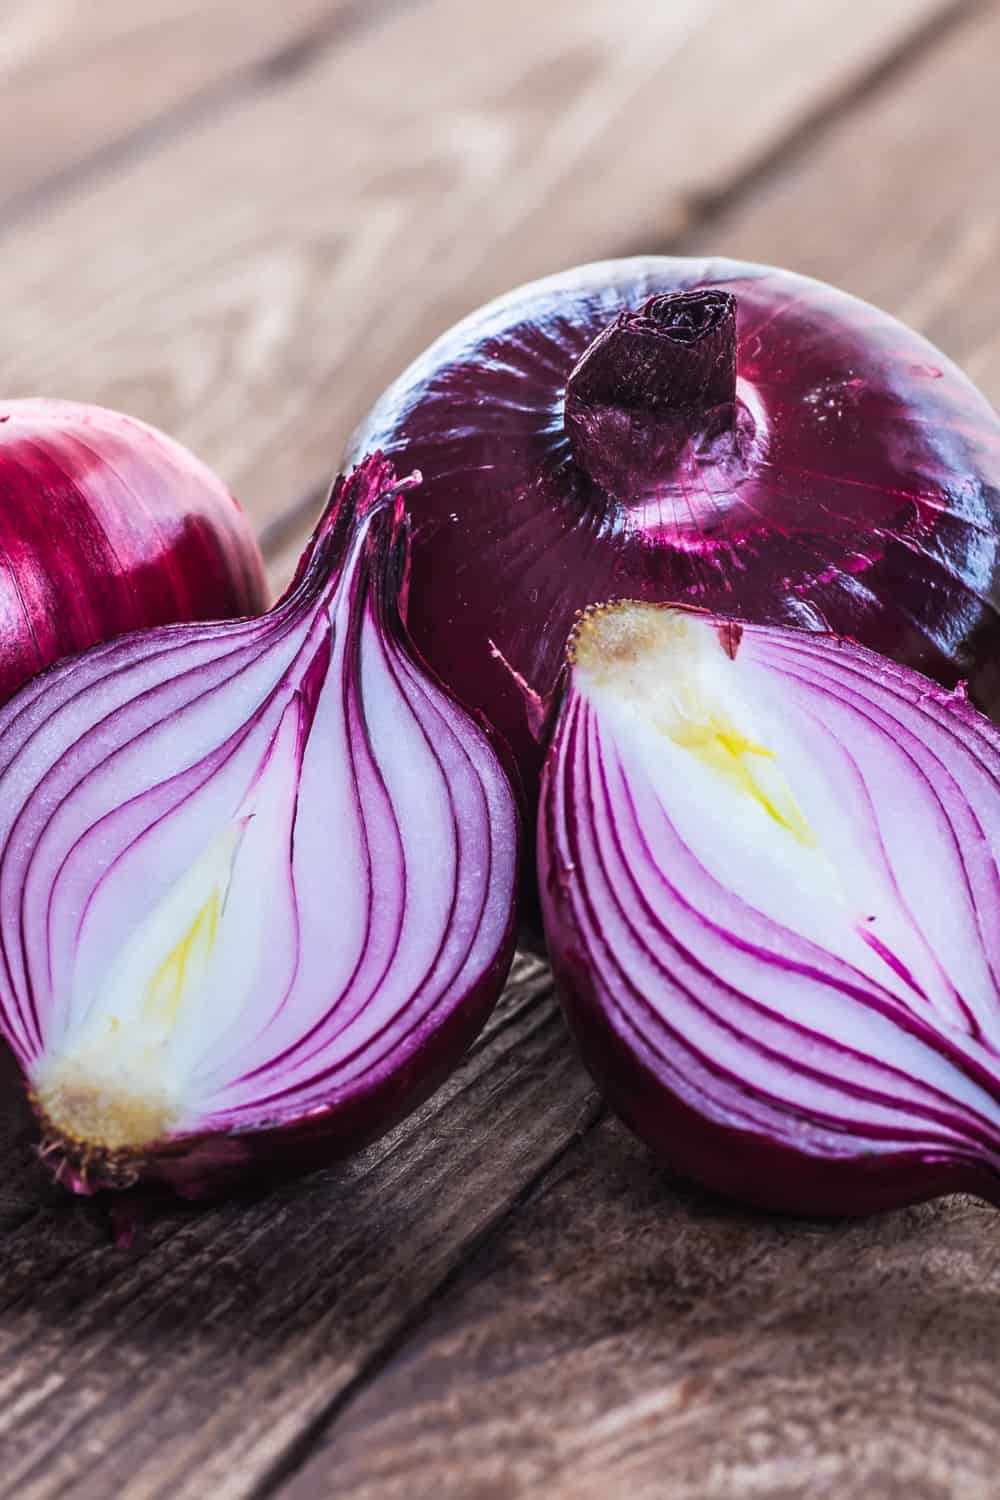 Onions Become a Valuable Staple in Medieval Cooking